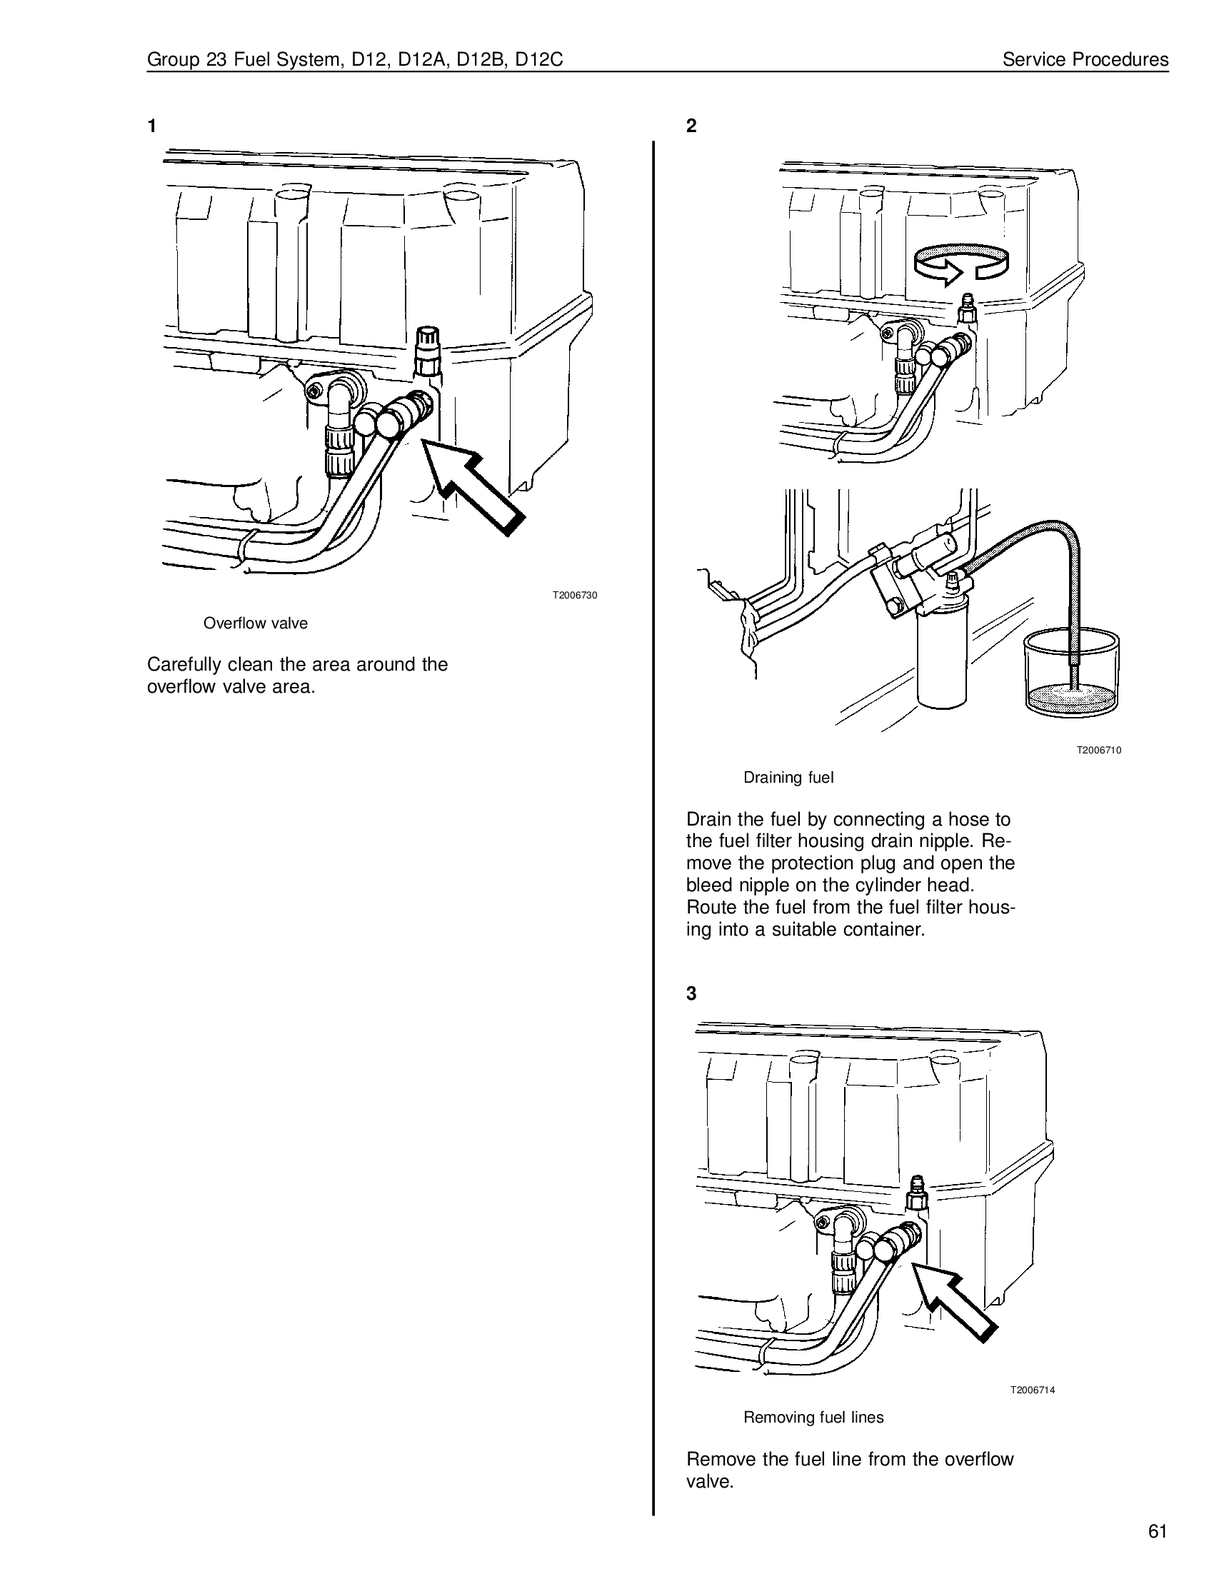 2005 Volvo Xc90 Engine Diagram Schematic Diagrams S80 D12c Electrical Wiring House U2022 2000